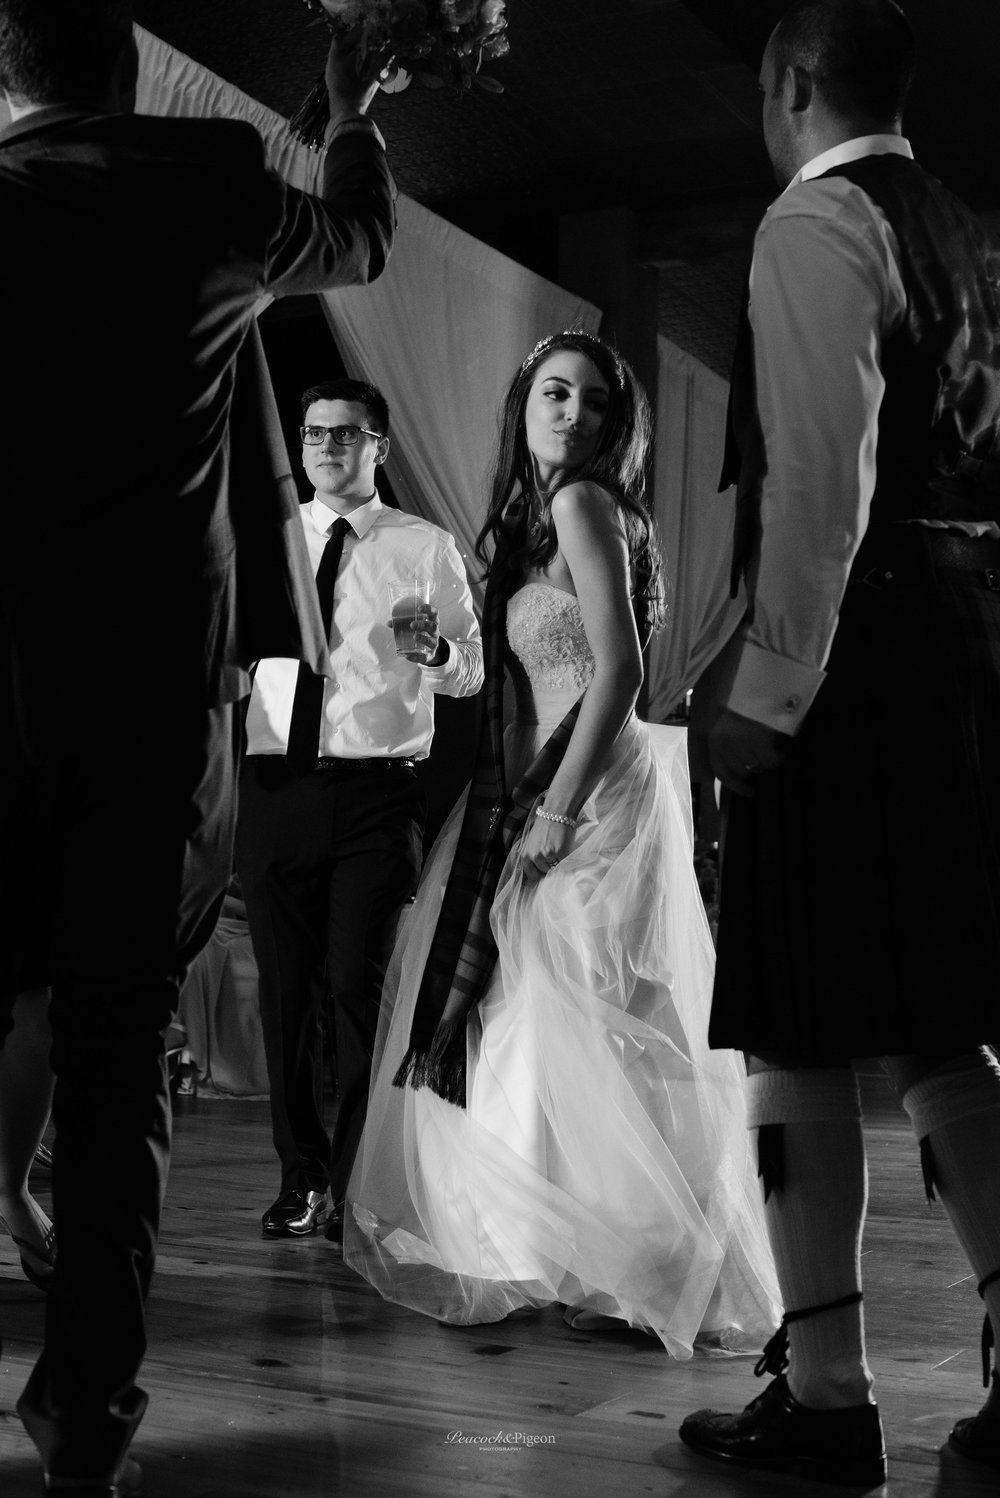 Callum_and_Sara's_Wedding_at_the_Cork_Factory_Hotel_in_Lancaster-Part_Ten_Dancing_Black_and_White_Watermarked-53.jpg